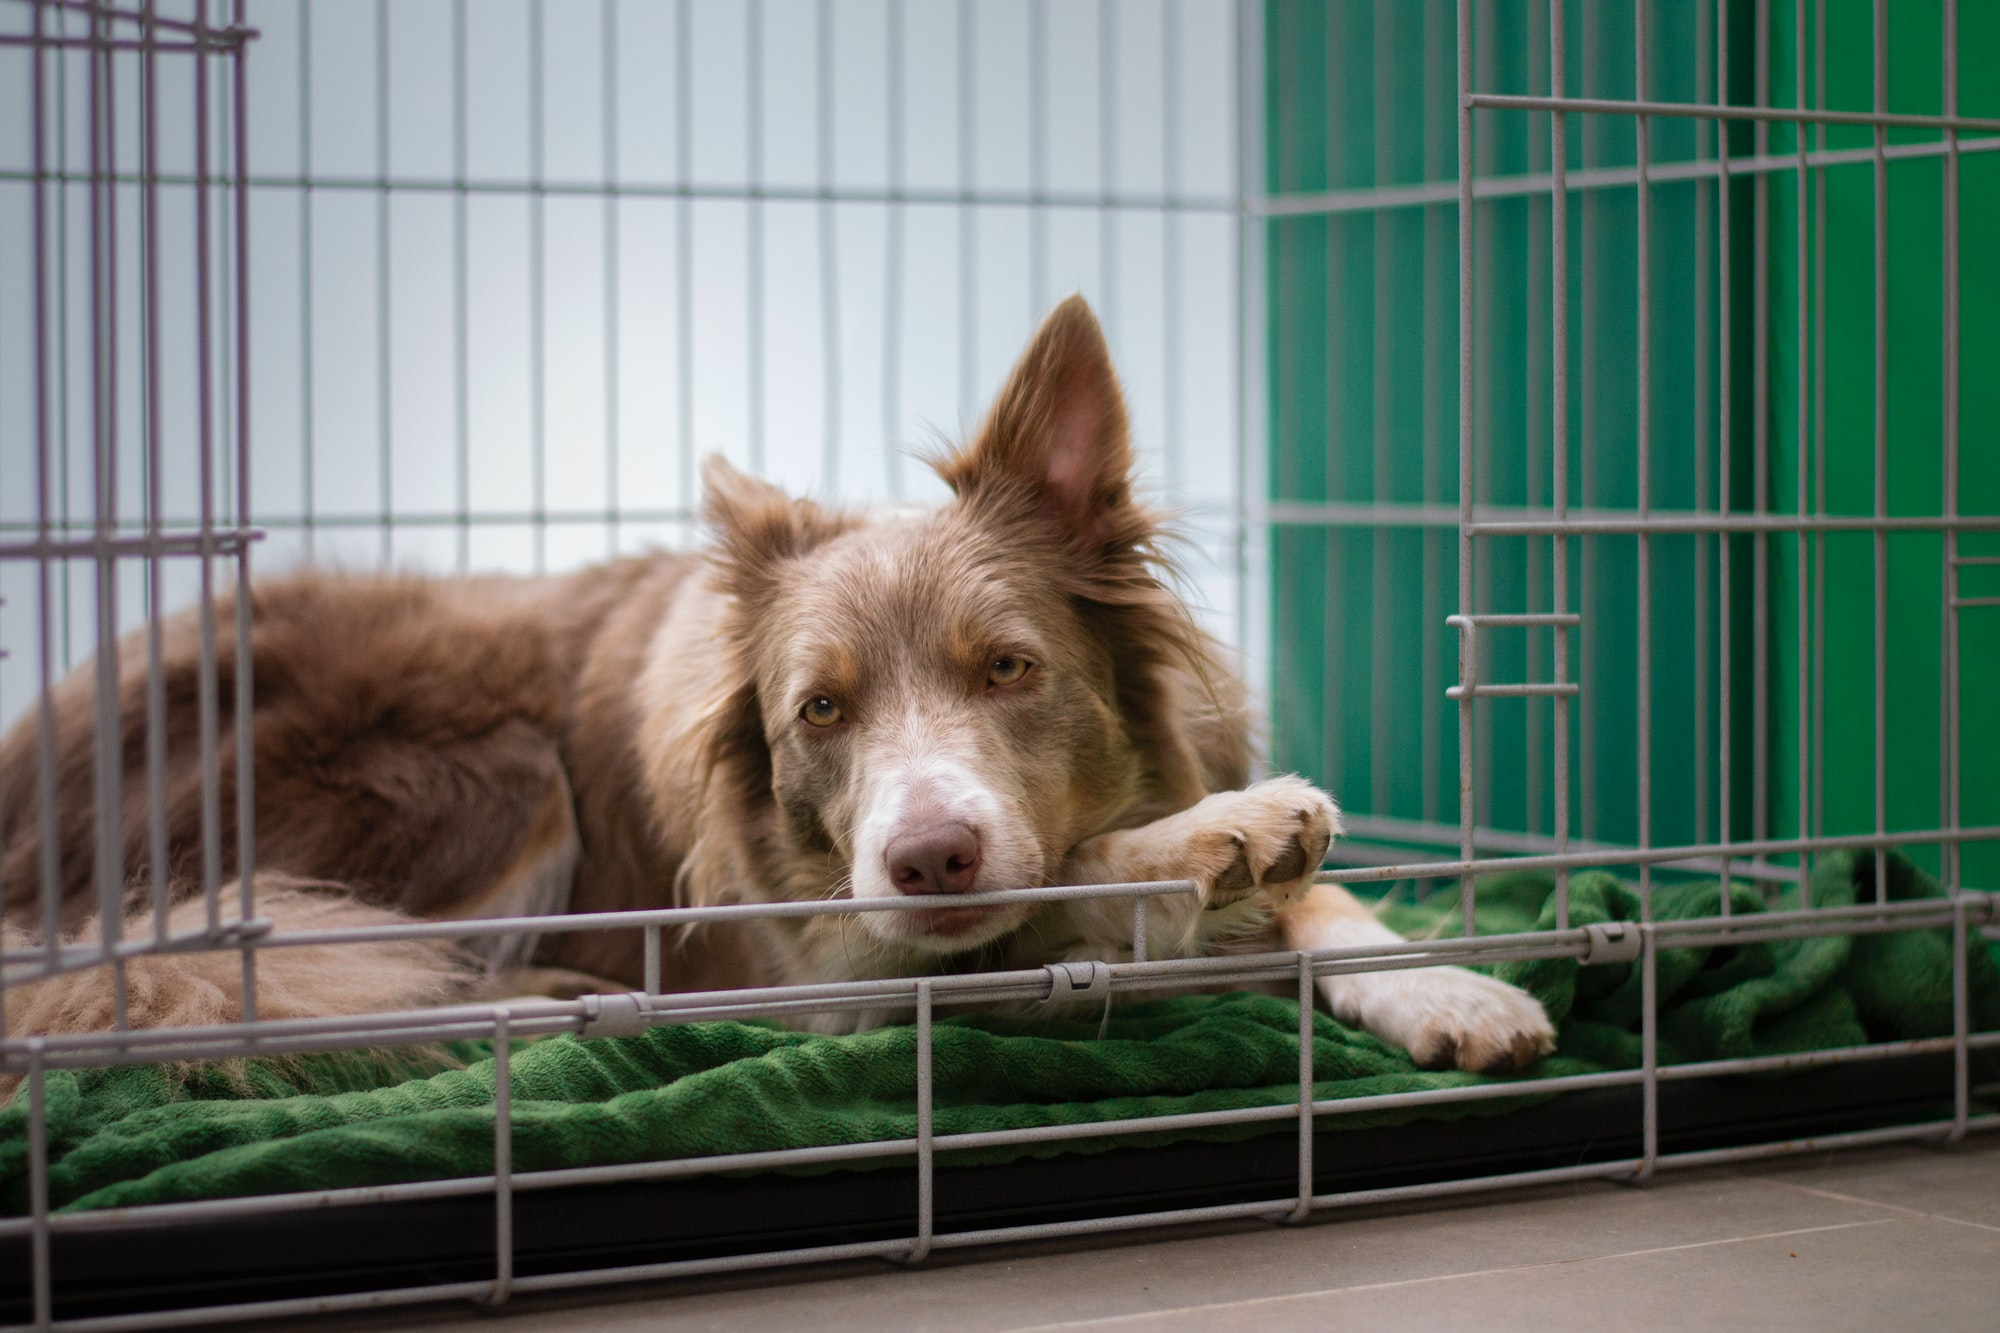 9 Easy Tips to Get Your Dog to Love Their Crate